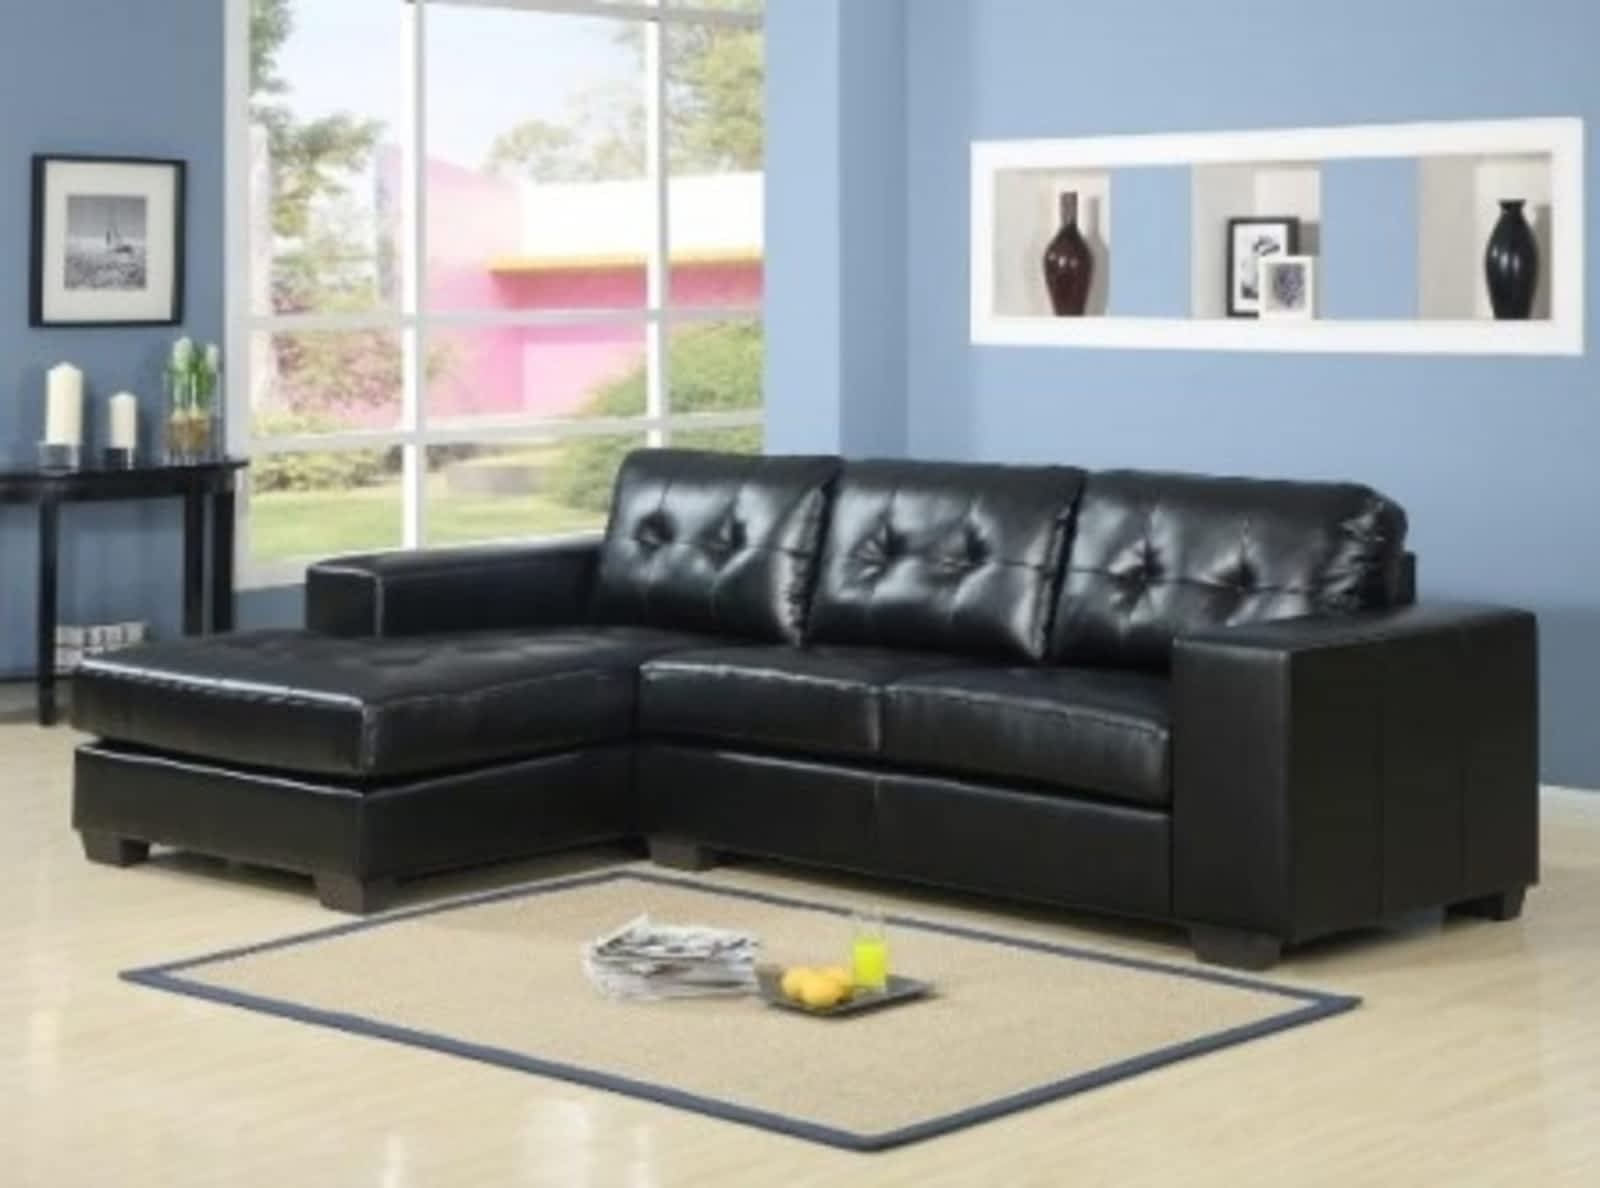 Sofa Liquidation Montreal Sofa Liquidation Home Decor 88